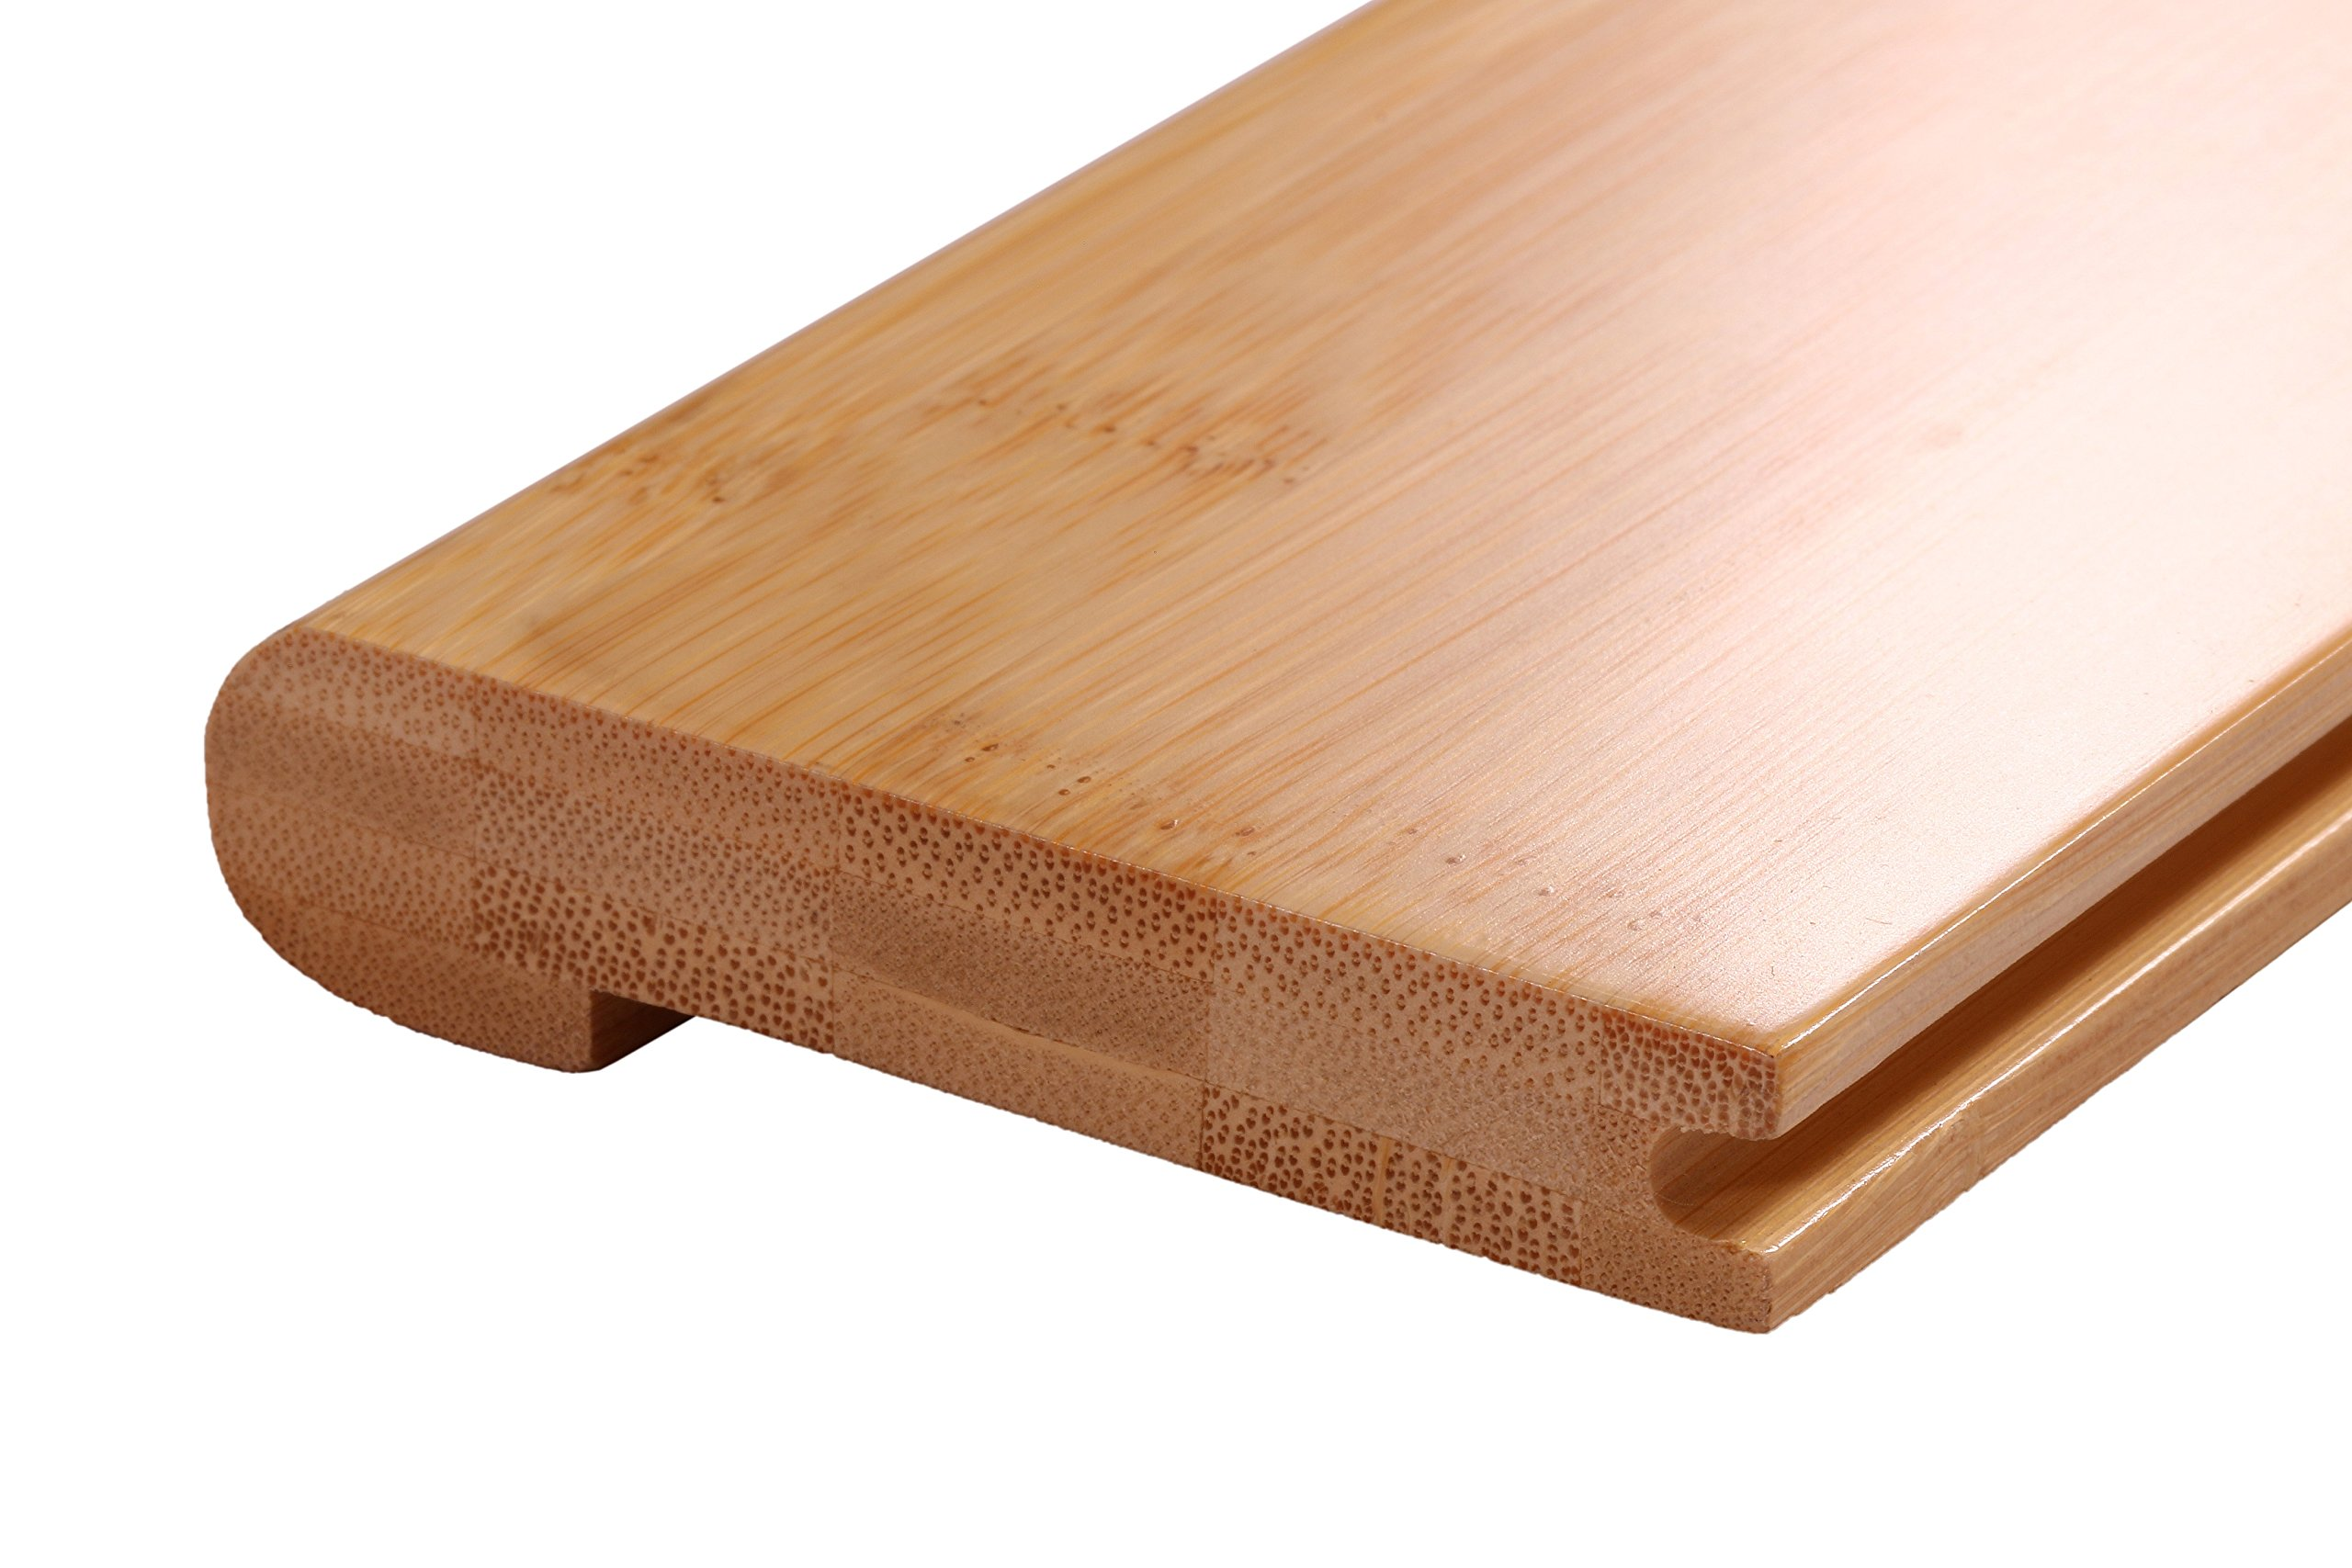 AMERIQUE Pre-Finished Solid Horizontal Natural Bamboo Stair Nose, 72'' L x 3-1/2'' W x 3/4'' H